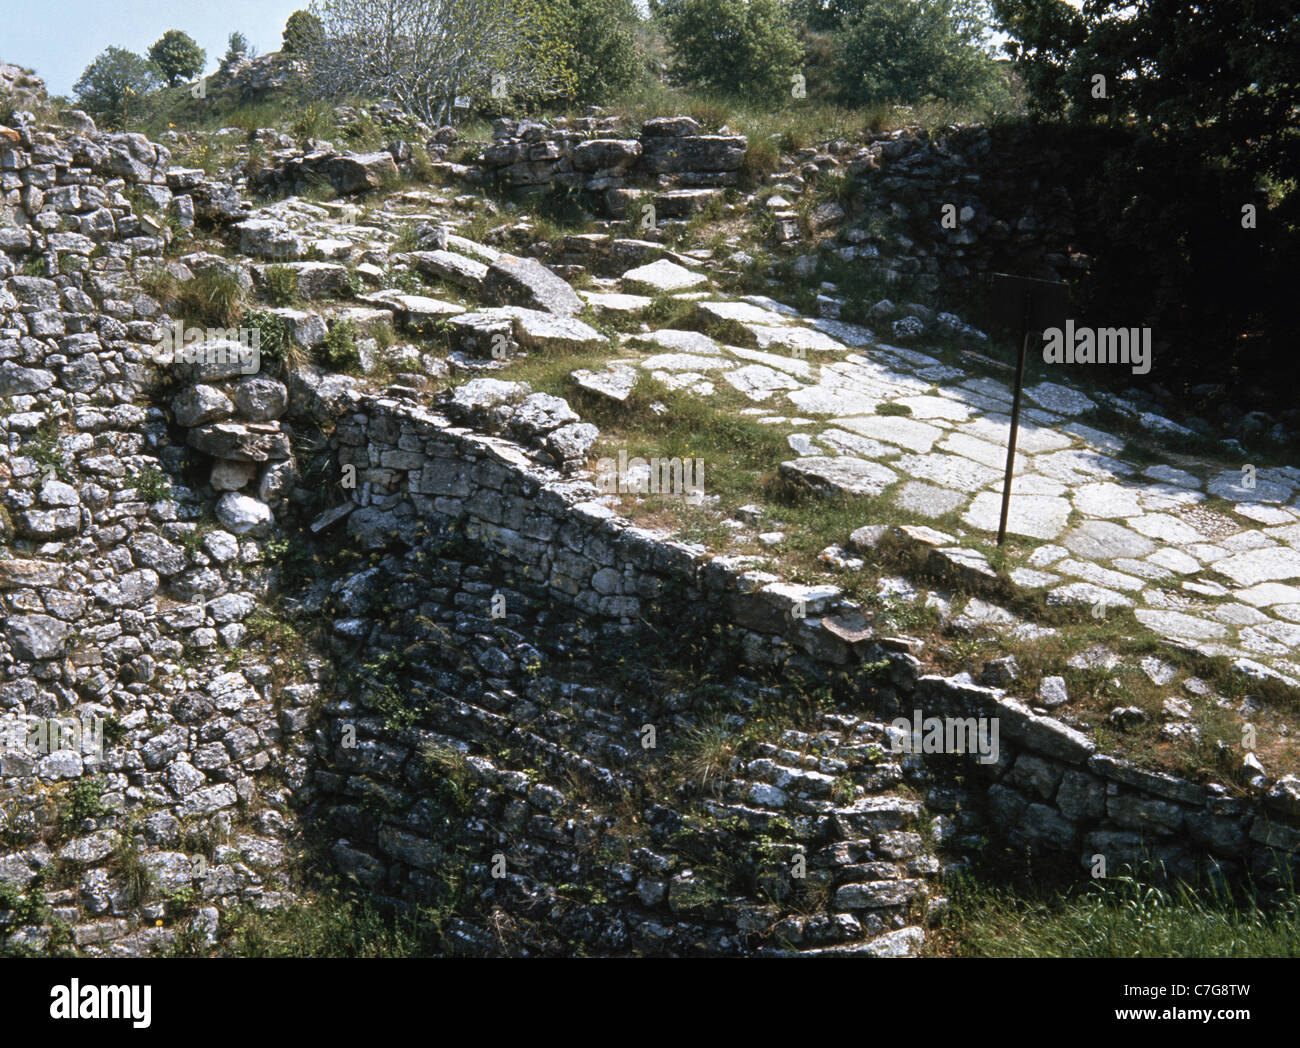 Archaeological site of Troy. Stratum IV. 2200-1900 B.C. Bronze Age. Access ramp to the main gate of the walls. Turkey. - Stock Image